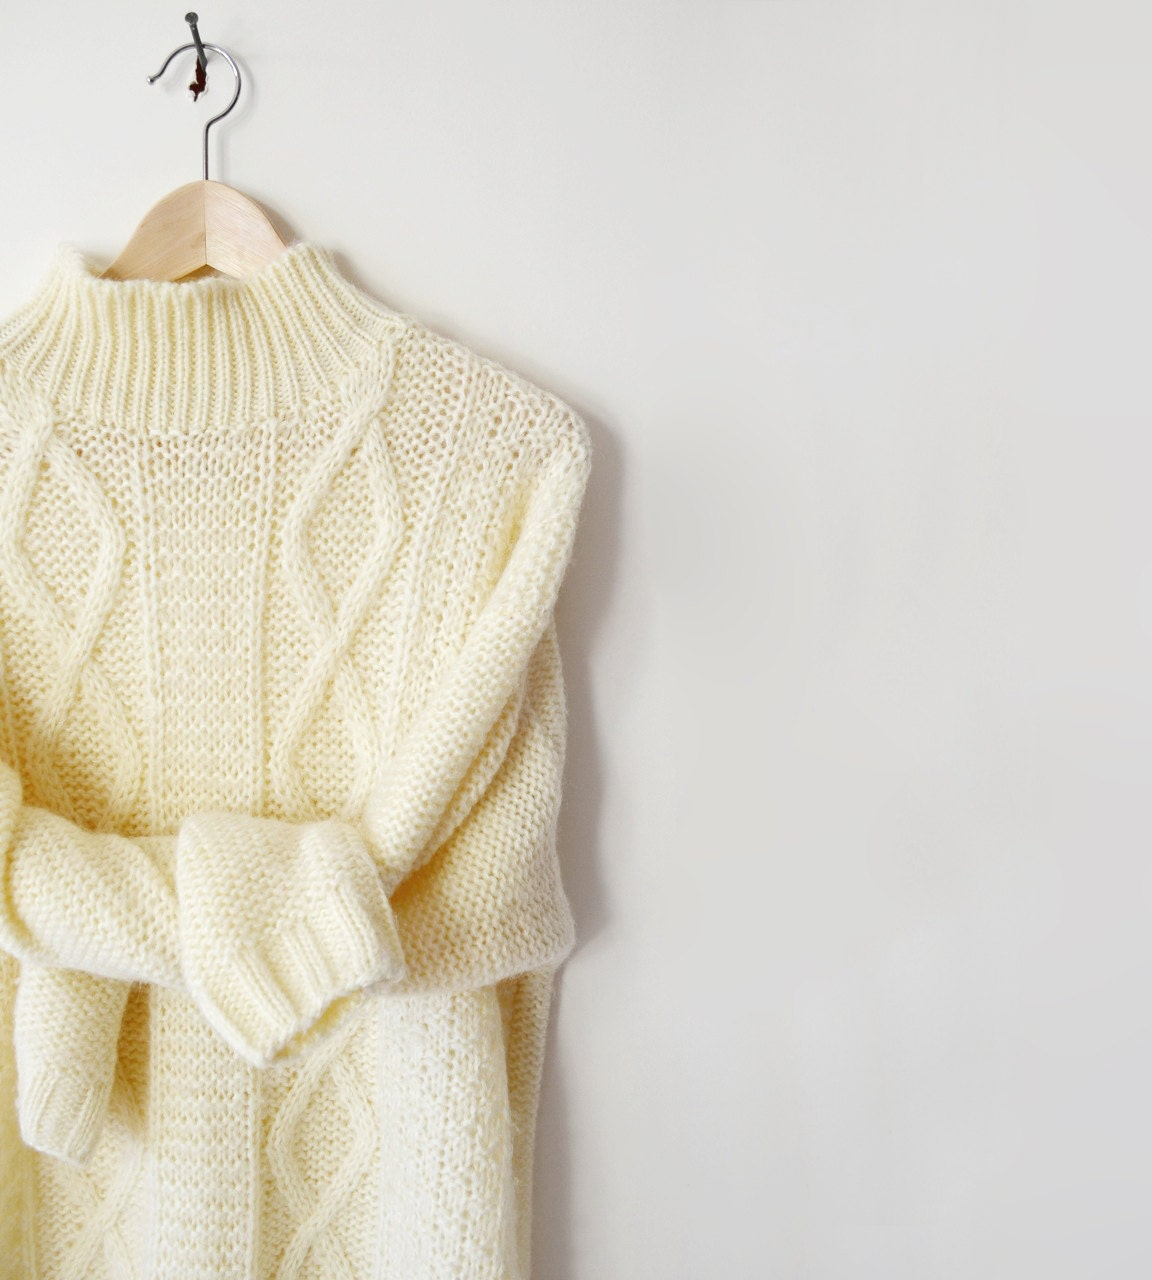 Oversized Cable Knit Cardigan Sweater 113